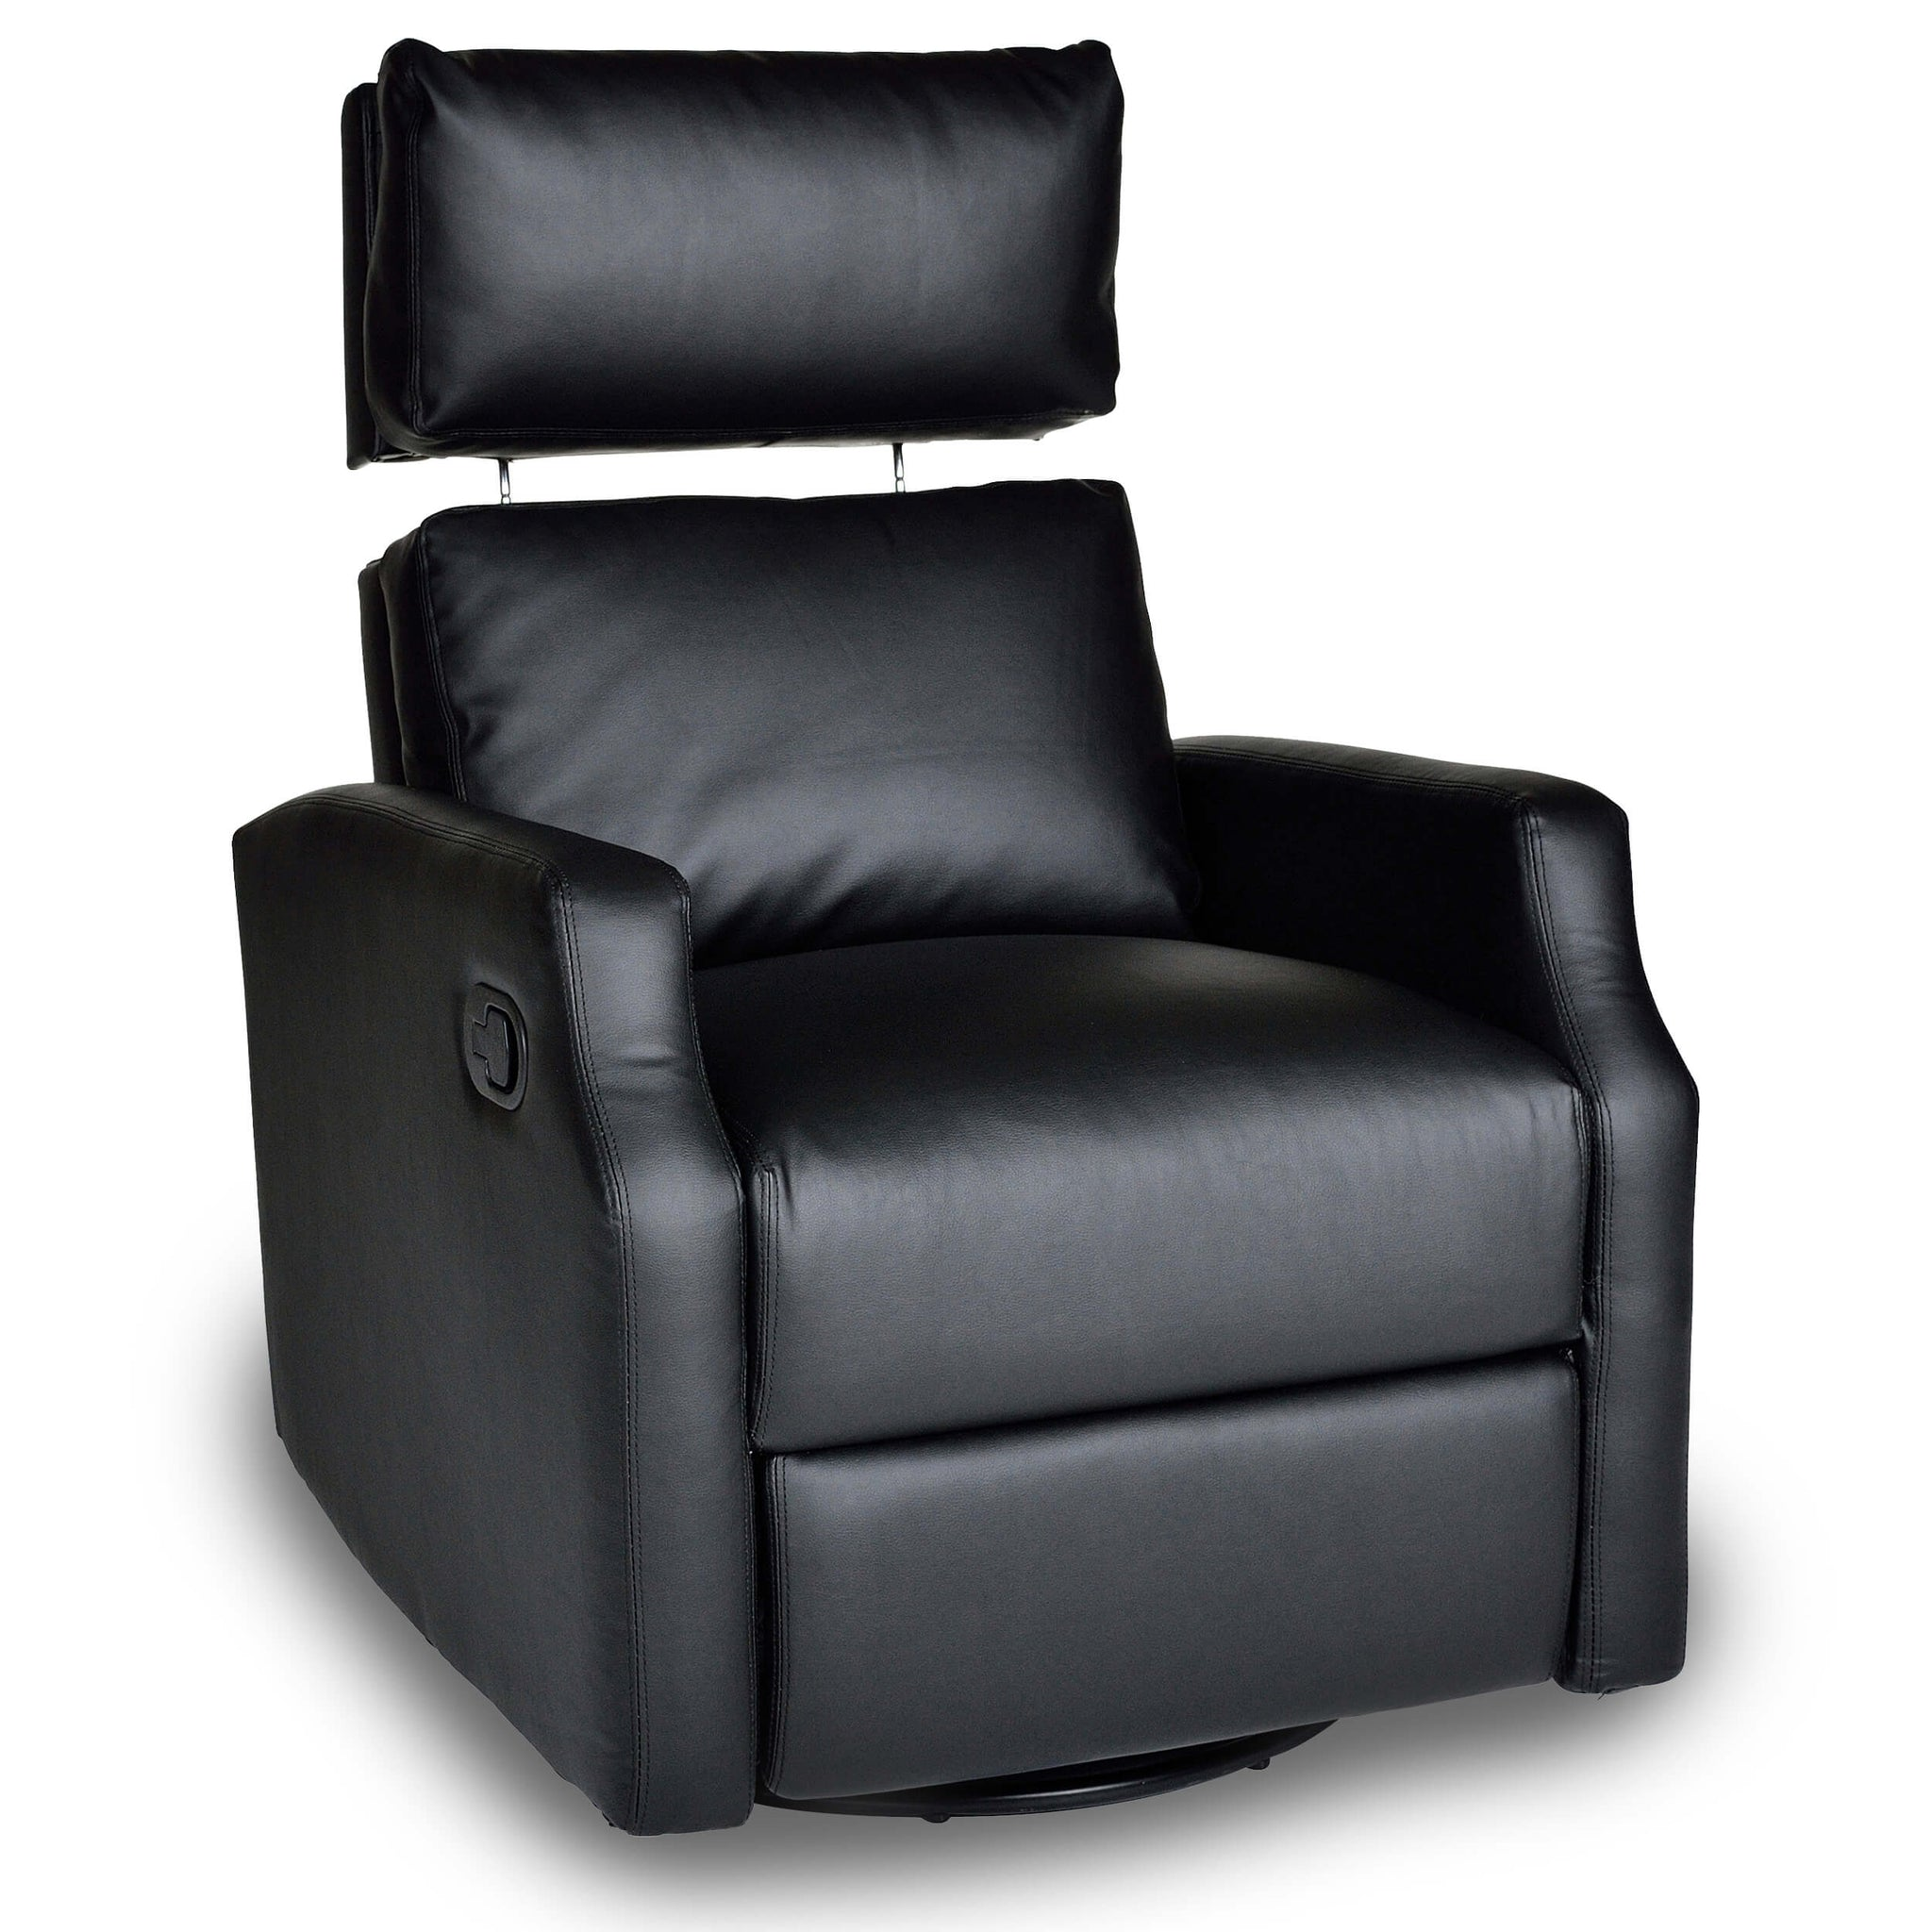 Stefan Swivel Glider Recliner Opulence Home